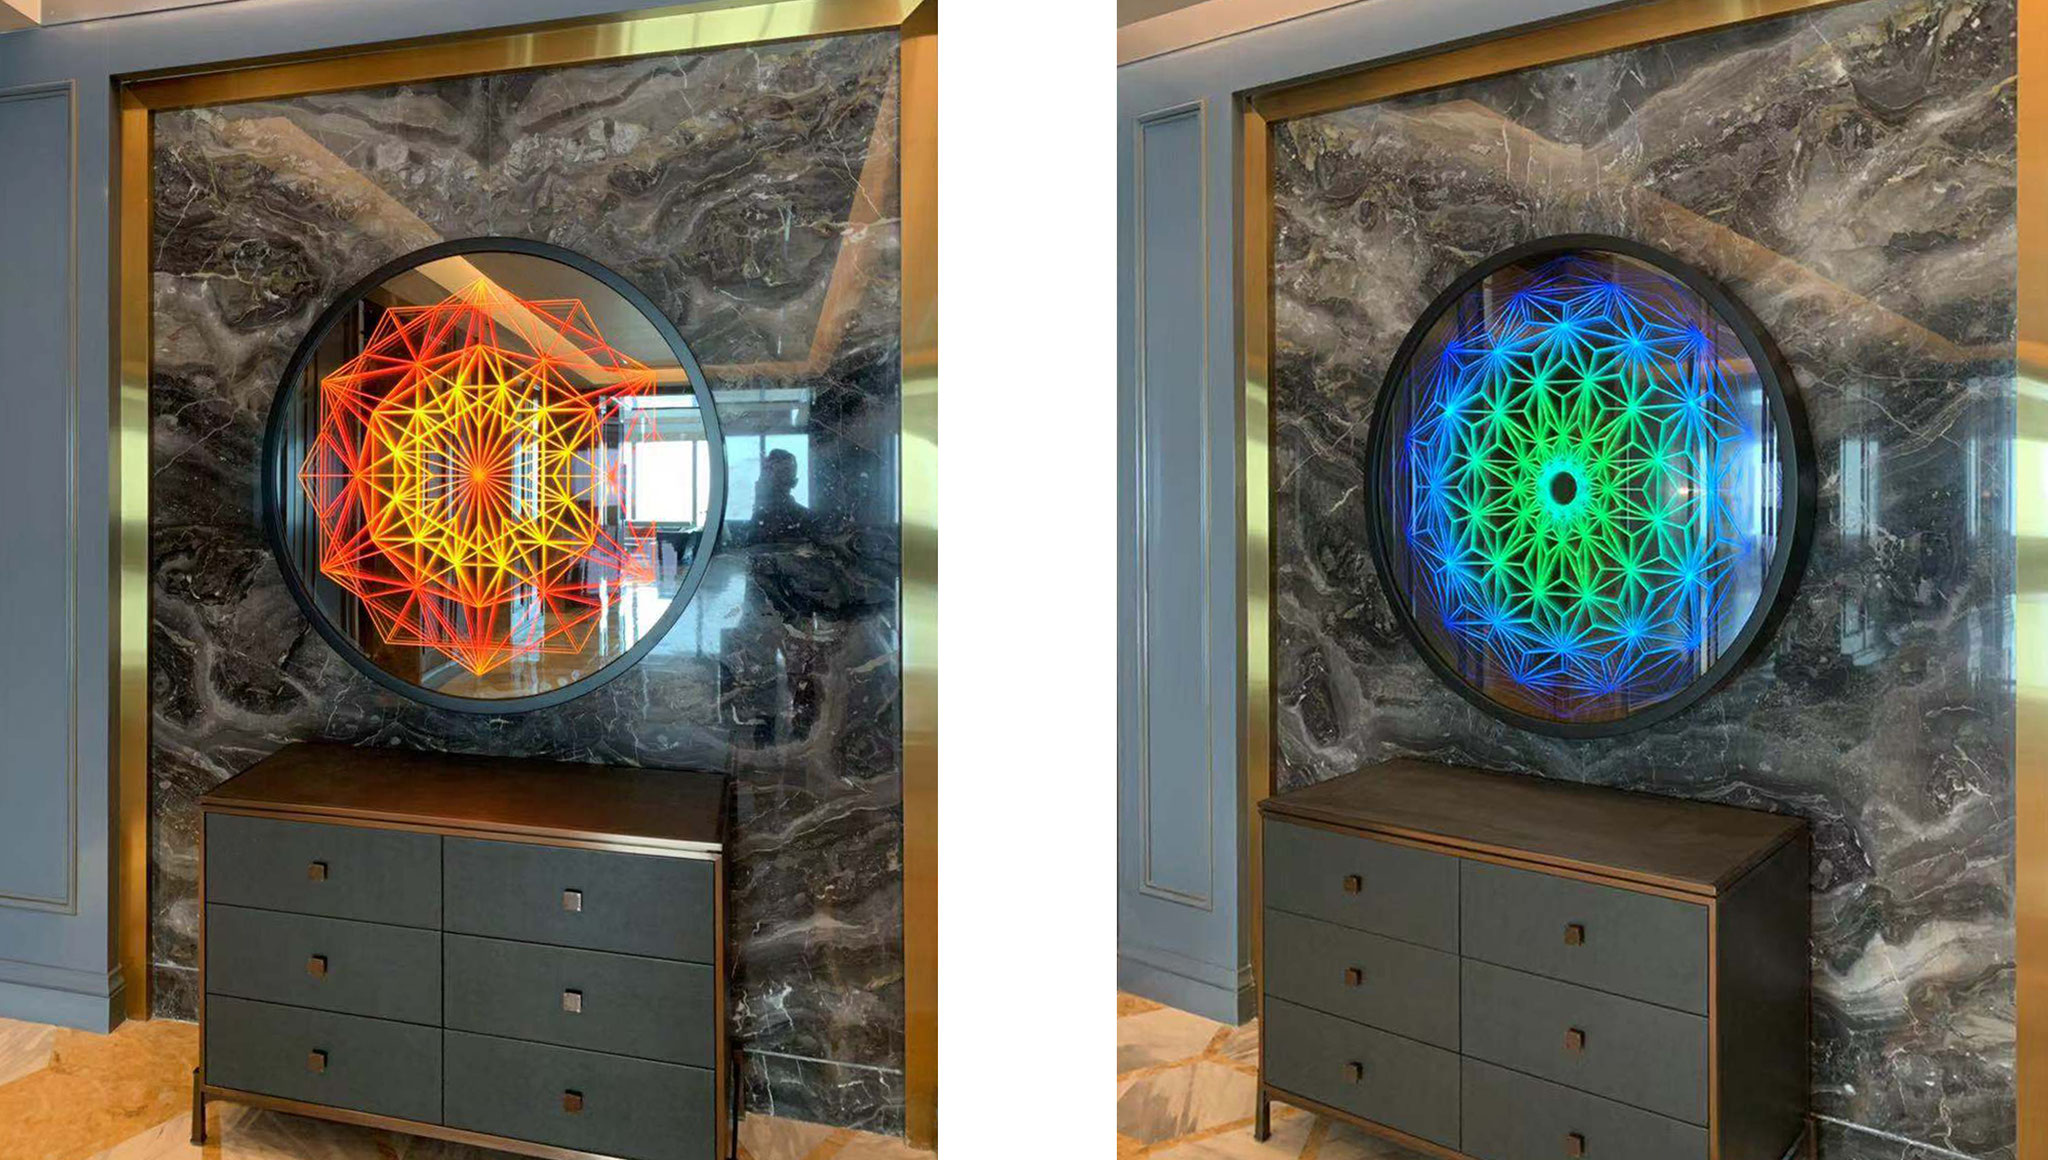 """Infinity-Mirror-artworks """"DIAMOND STAR"""" and """"DIAMOND TORUS"""" (Ø120 x 9 cm) installed at the reception lobby of bar & dining area of the new luxury hotel Conrad in Shenyang / China. July 2019."""